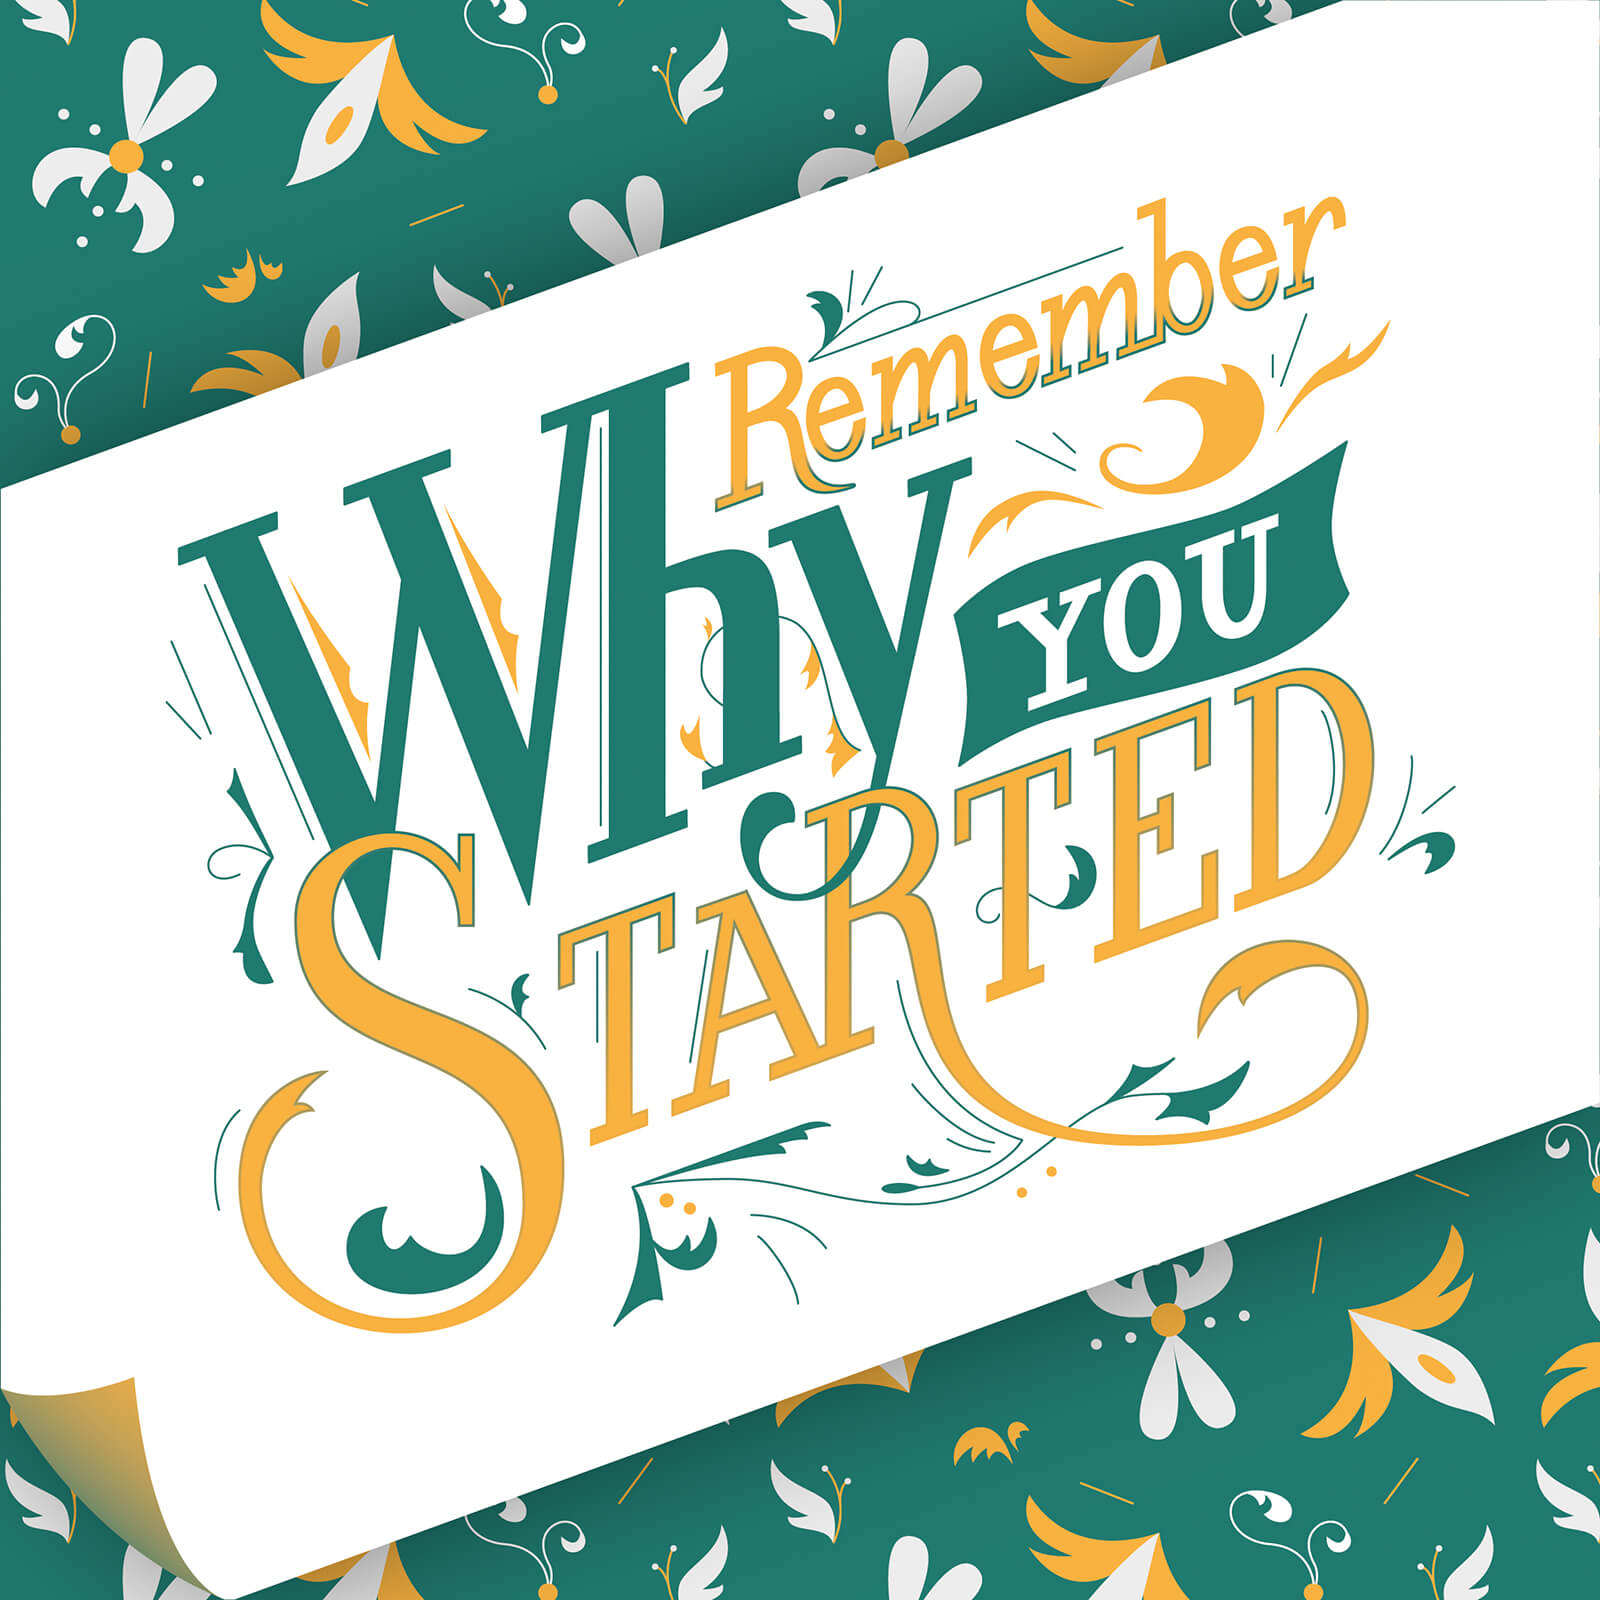 Remember why you started - Anna Chistyakova